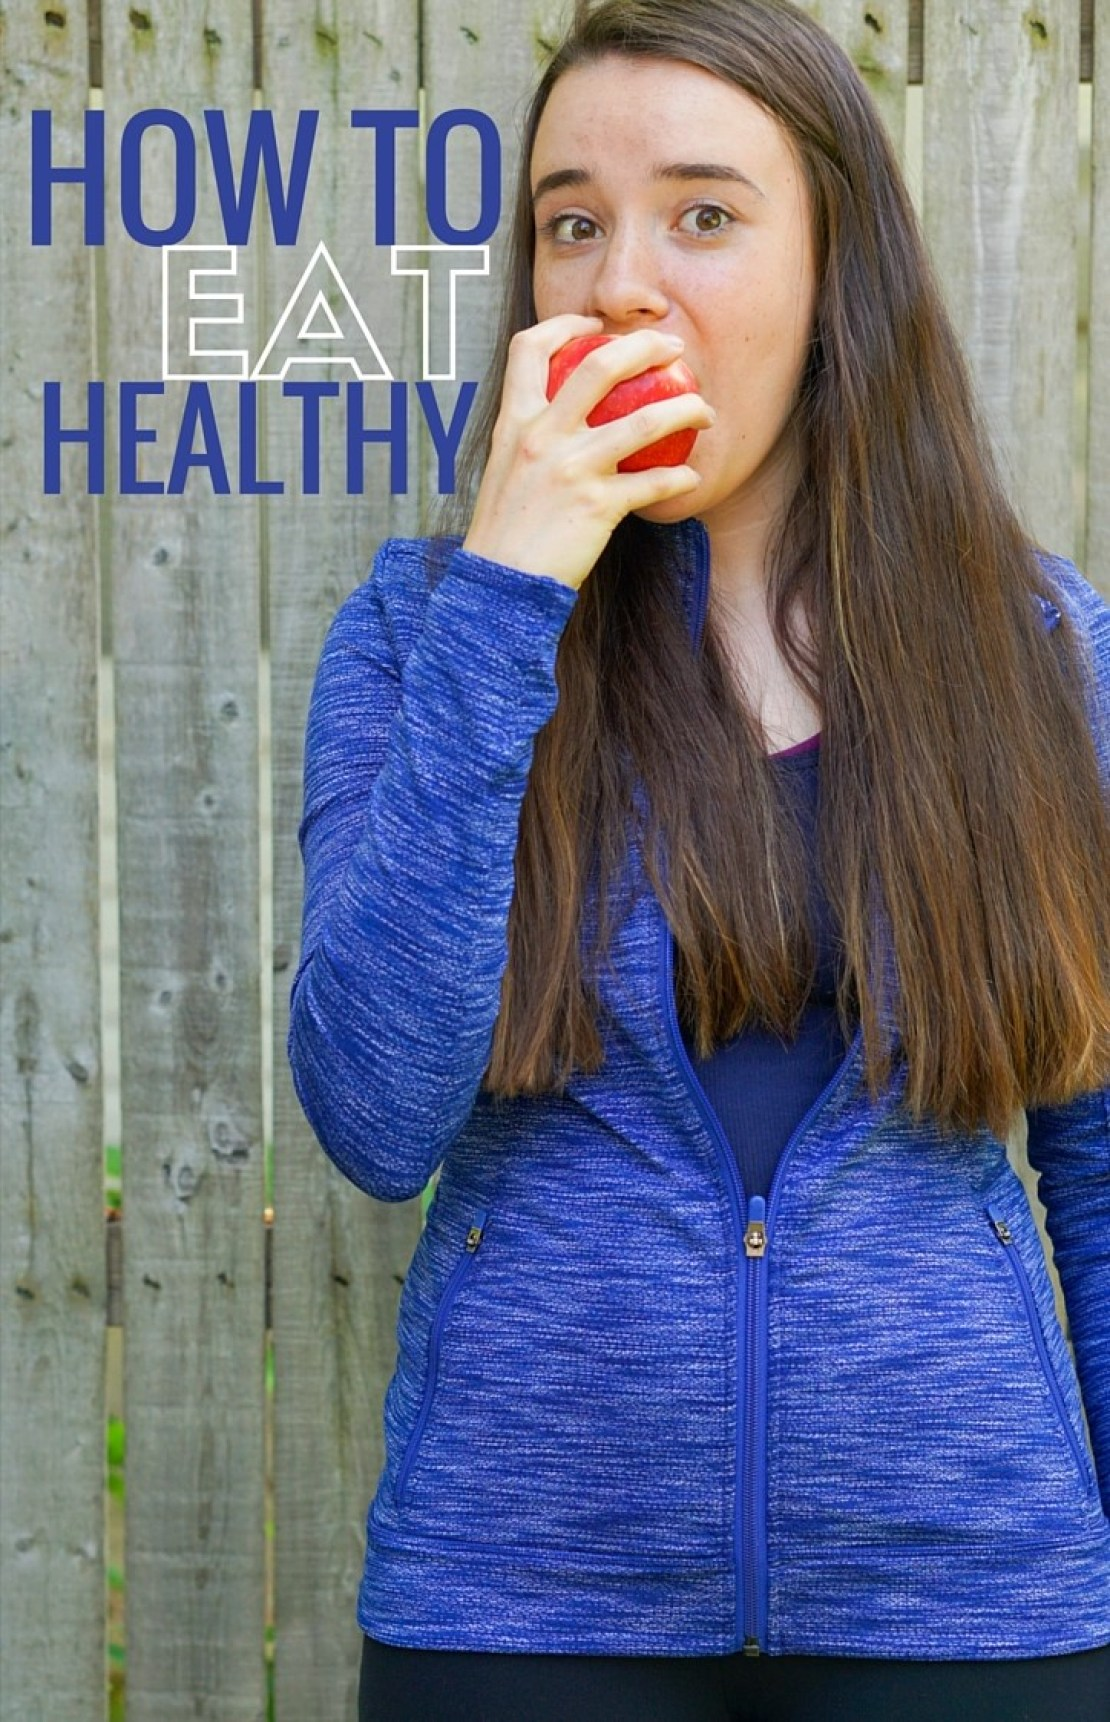 How to Eat Healthy - Just follow these easy steps and learn a few tips and tricks to eat healthier | www.wakeuptowaffles.com